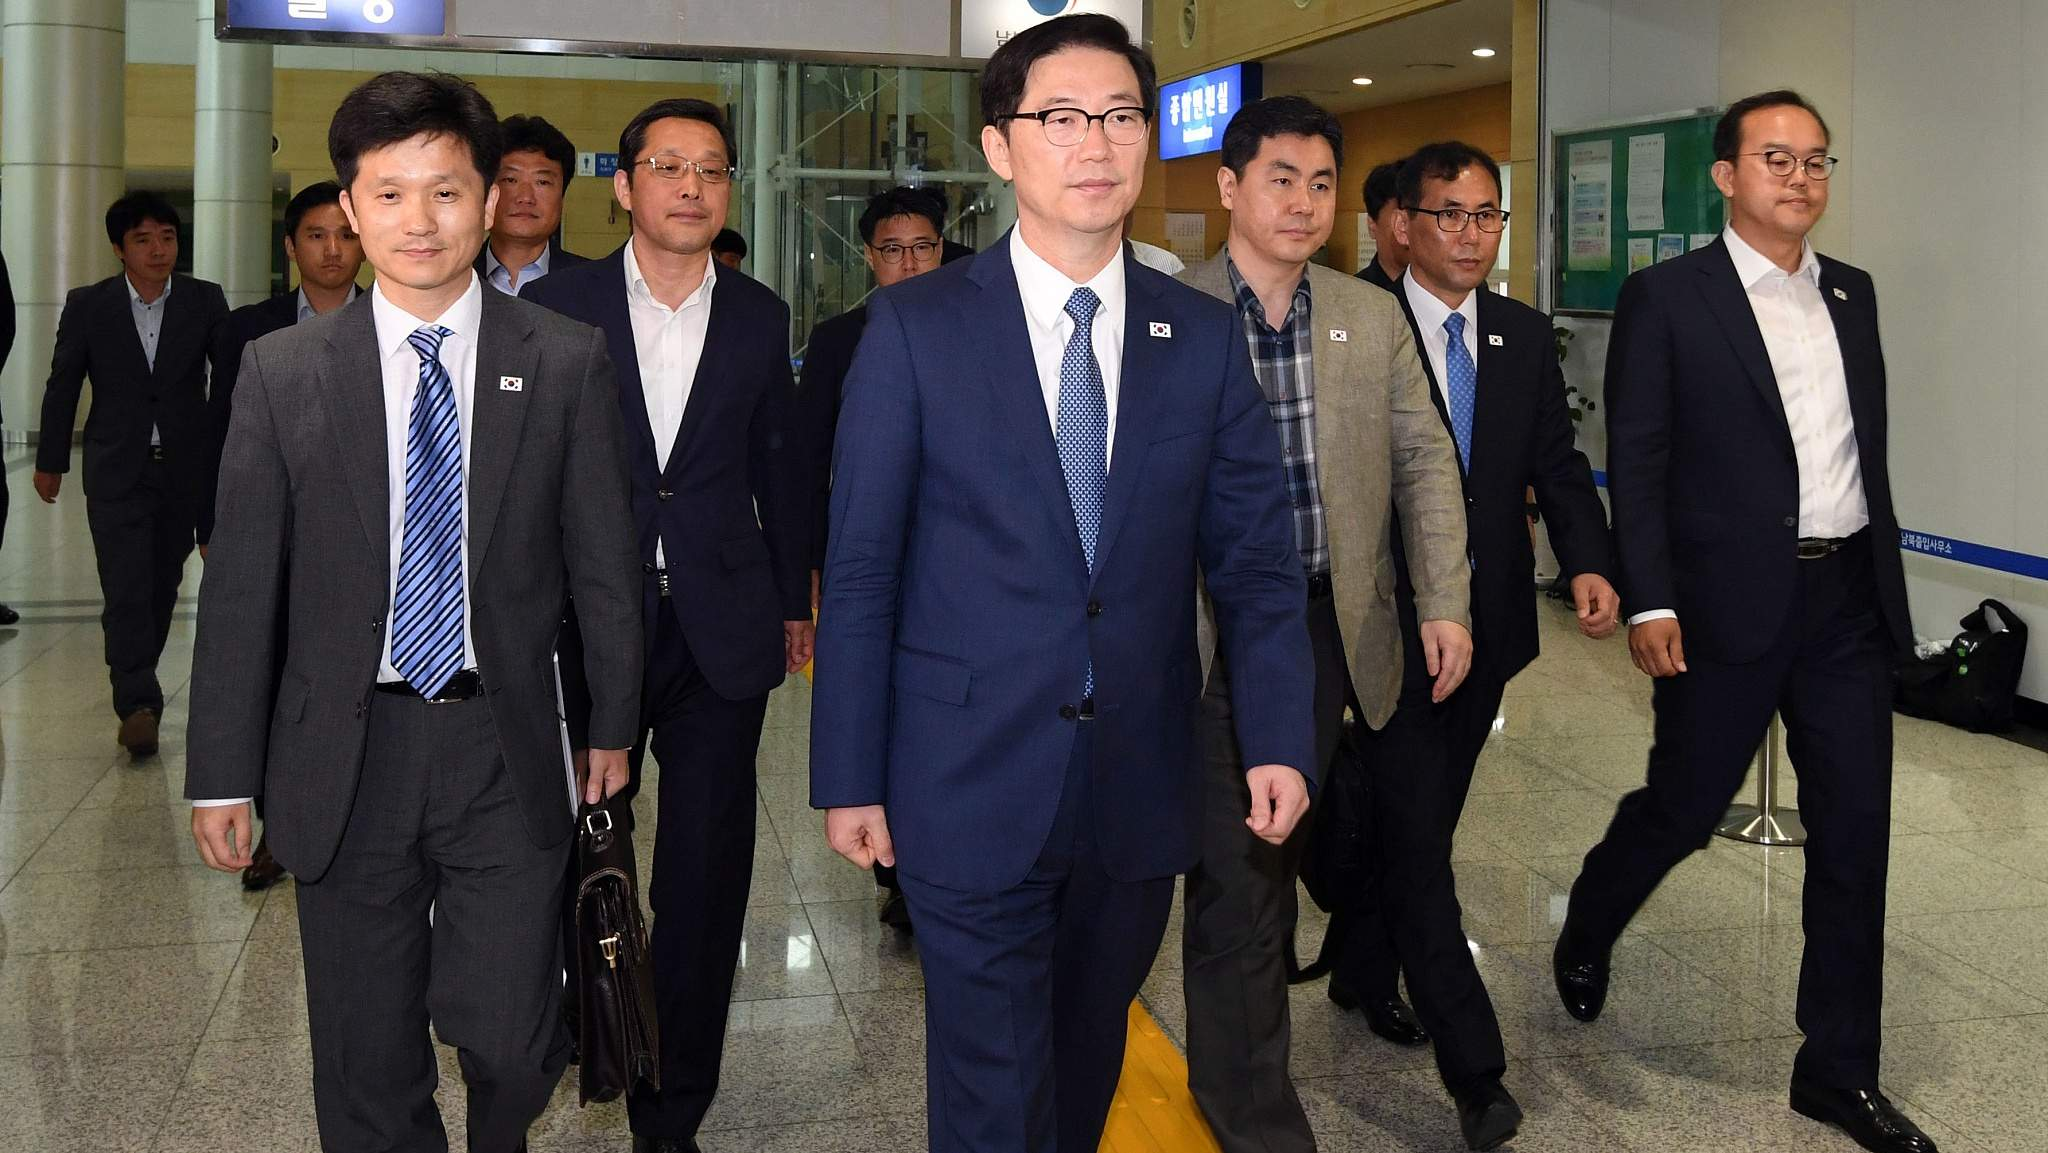 S.Korea in consultations with UN to waive sanctions for inter-Korean liaison office